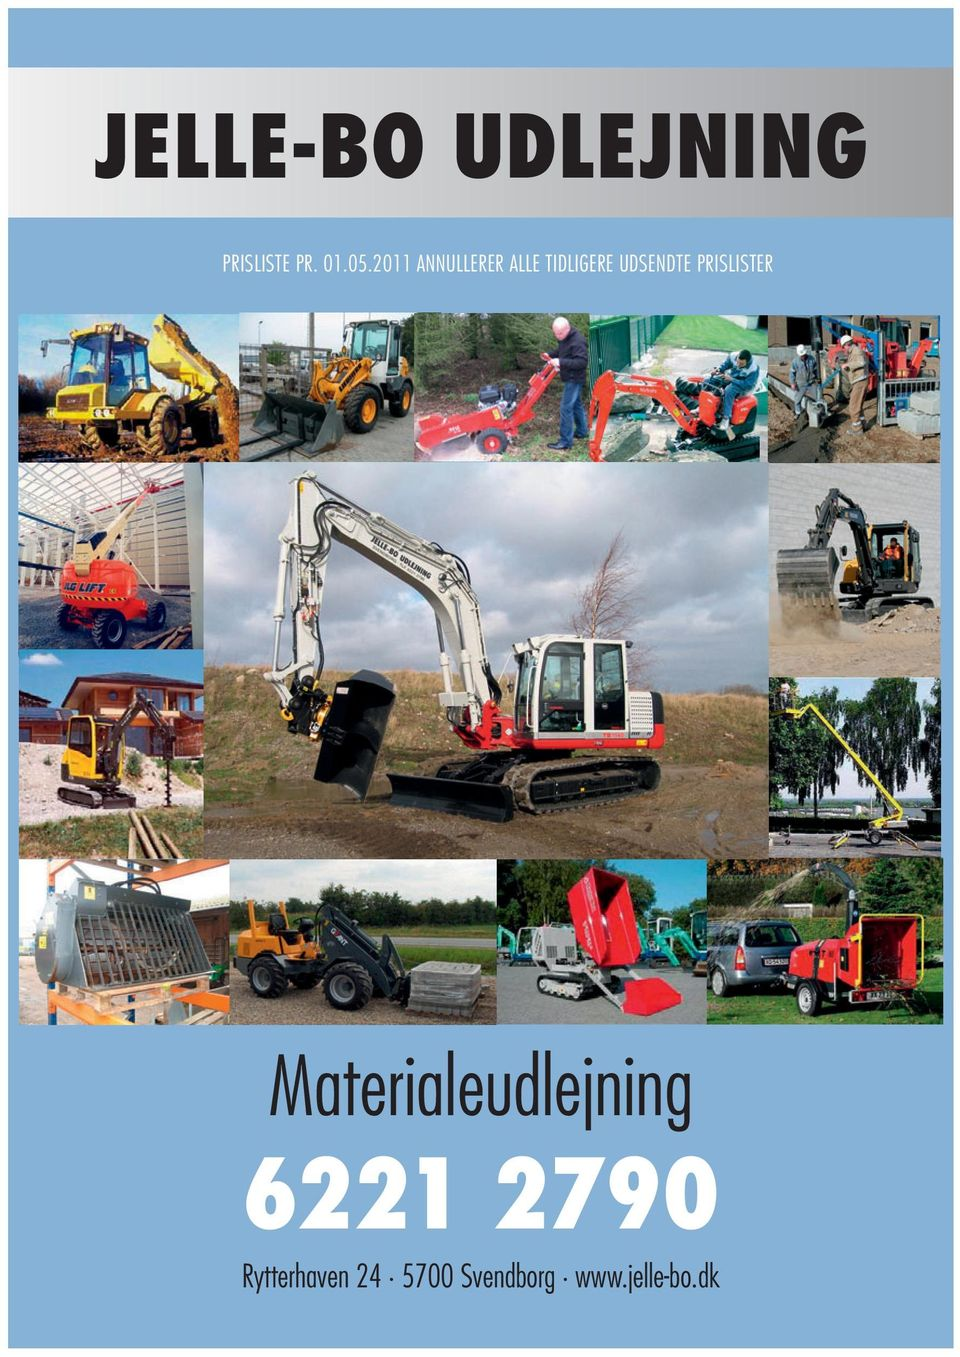 PRISLISTER Materialeudlejning 6221 2790